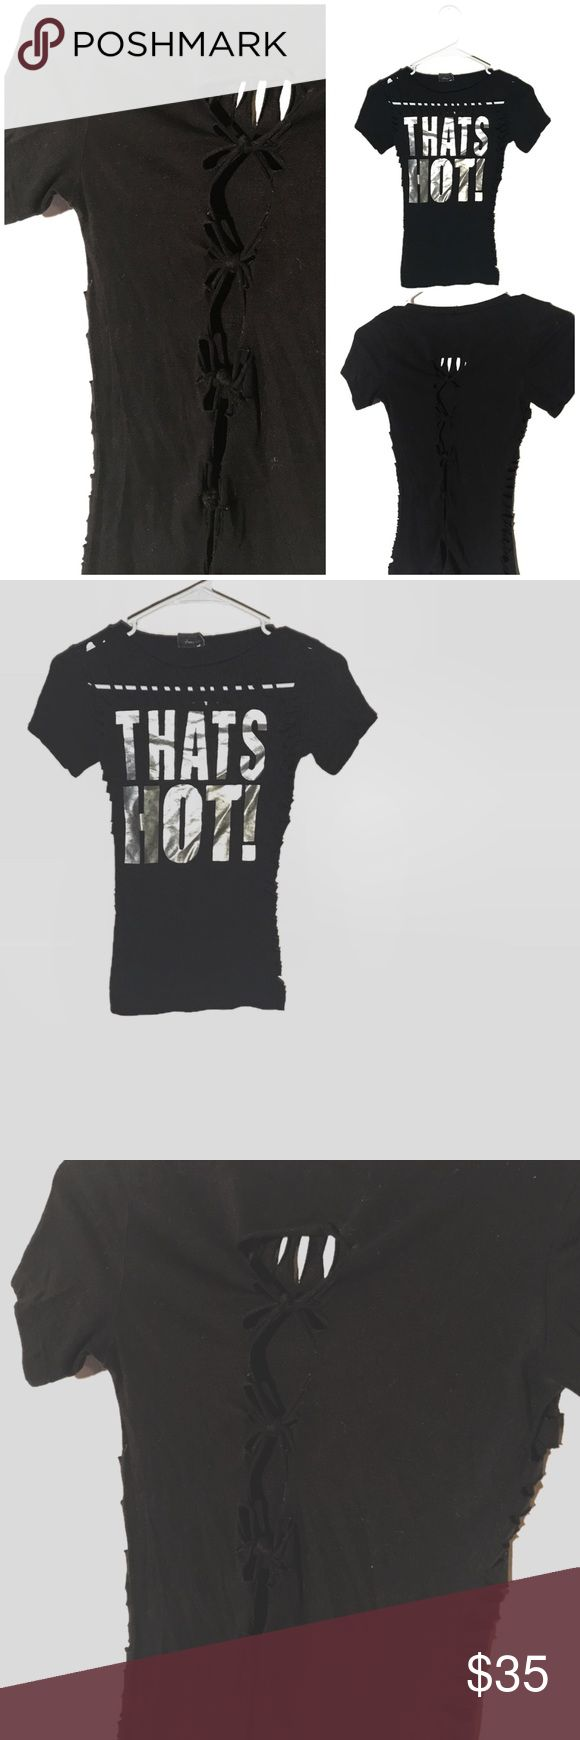 """✂️ Cut up tied stretchy THAT'S HOT graphic tee Totally cut up this stretchy """"that's hot"""" graphic tshirt. Writing is metallic. Has sliced and cuts all over. Back is cut up and retied into a different design. This shirt is Stretchy cotton. Looks far better on than on his hanger! Size small/medium.  #tumblr #thatshot #parishilton #graphictee #stretchy #black #metallic #cutup #sliced #shredded #revamped #redone #reworked #shirtdesign #cutup #cutupshirt #revampdlife #danamariedior reVamp'D Tops…"""